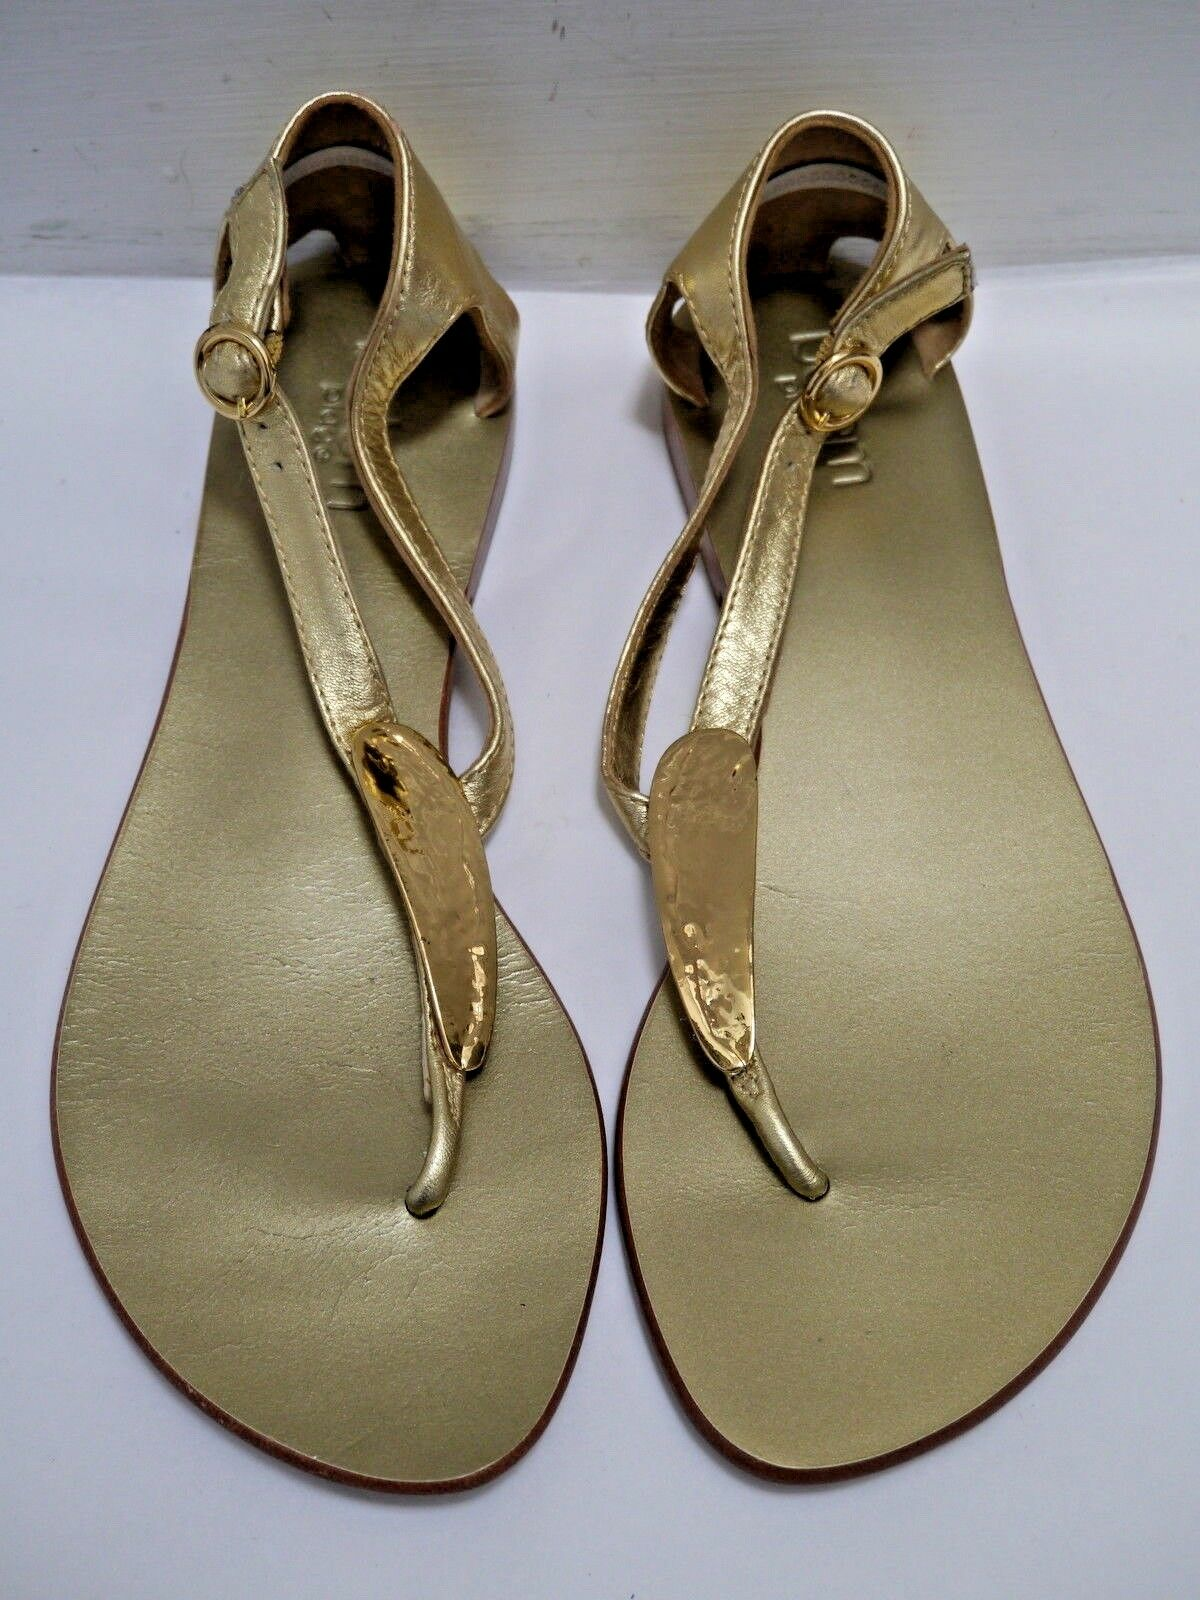 BO'EM PLAGE gold leather and metal thong flat sandals size 39